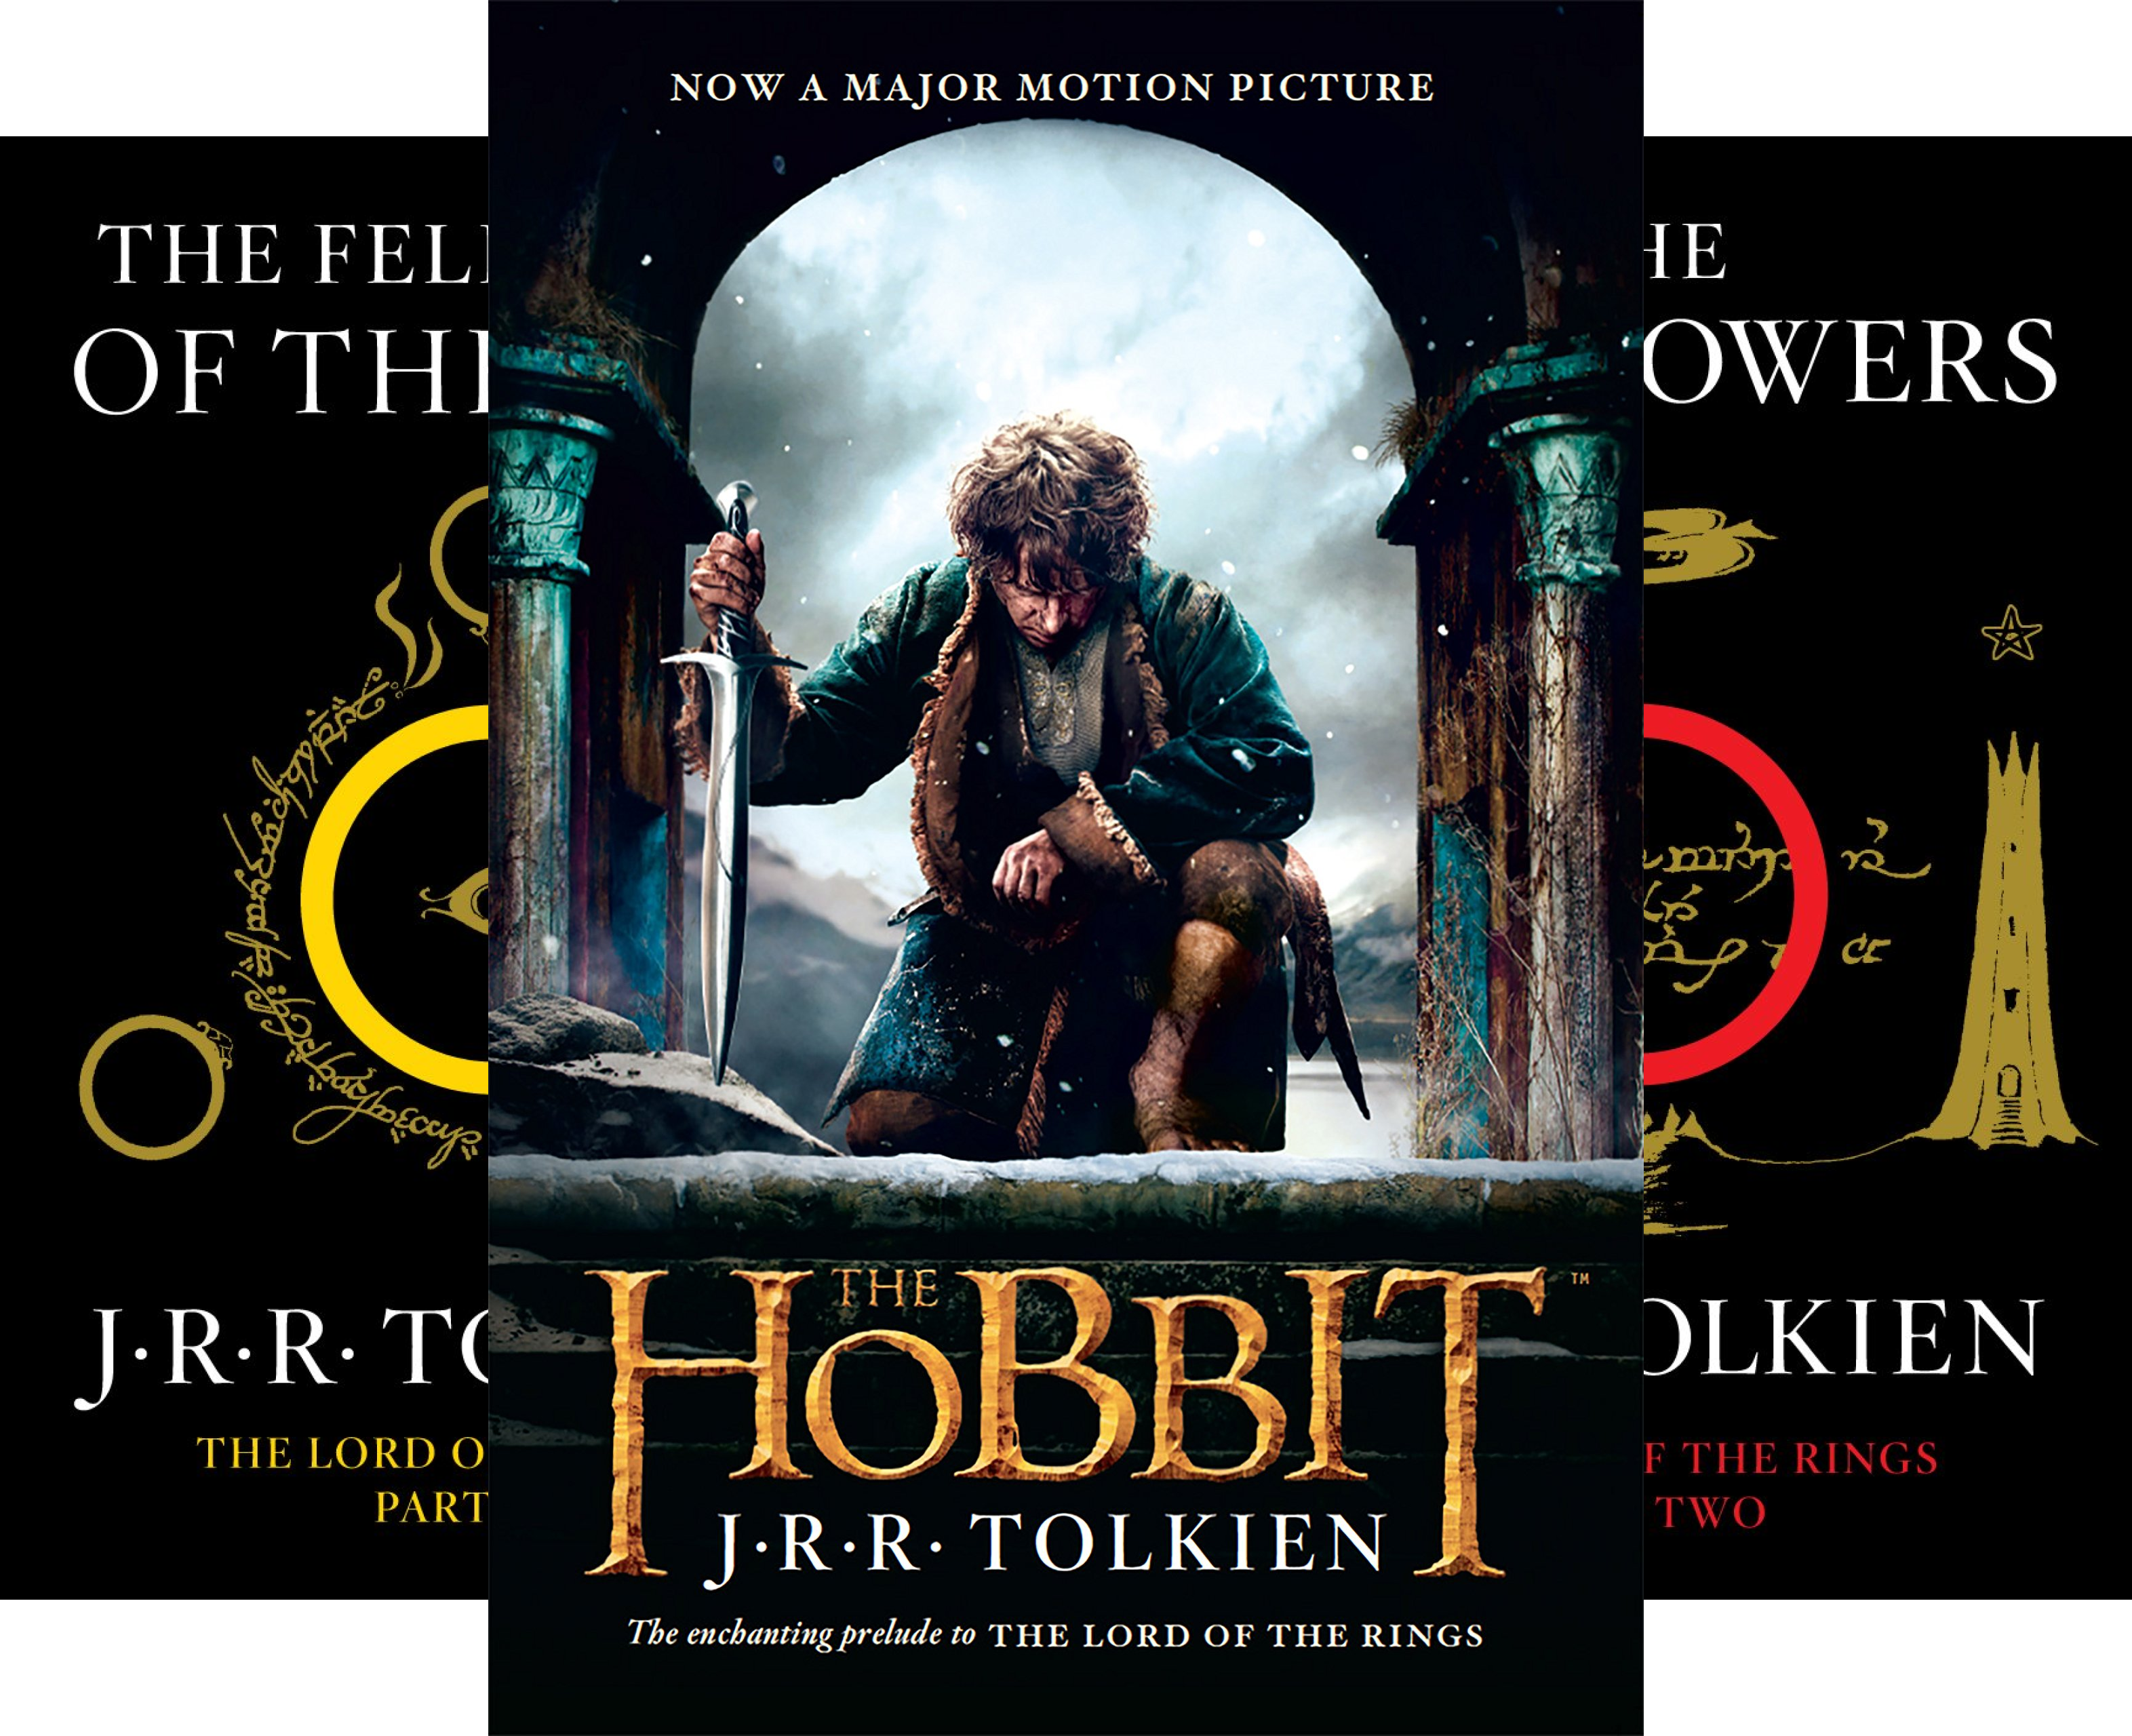 A character introduction and summary of the hobbit by j r r tolkien